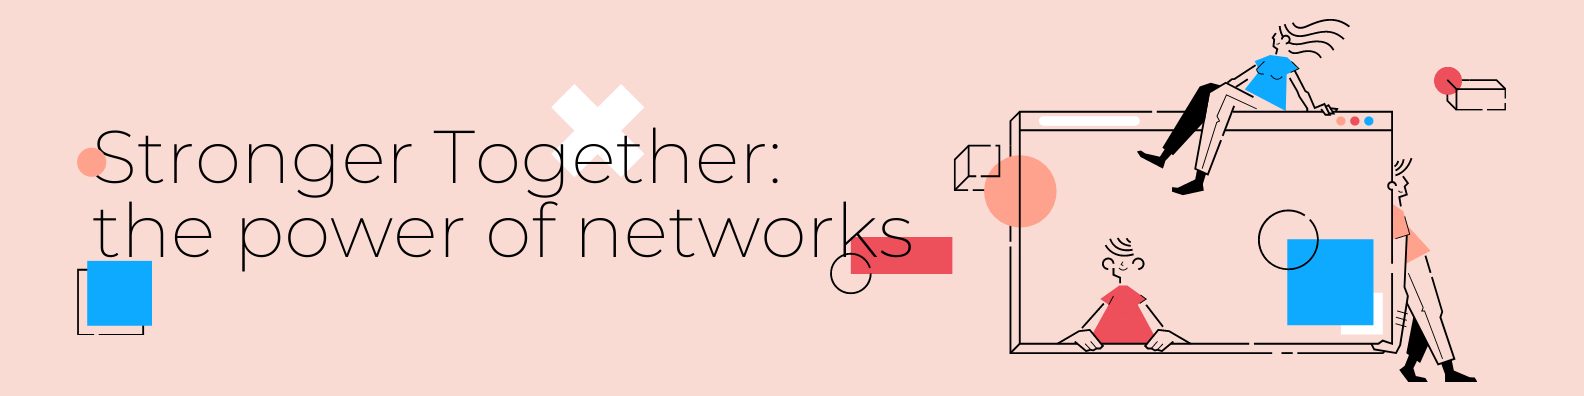 stronger together: the power of networks